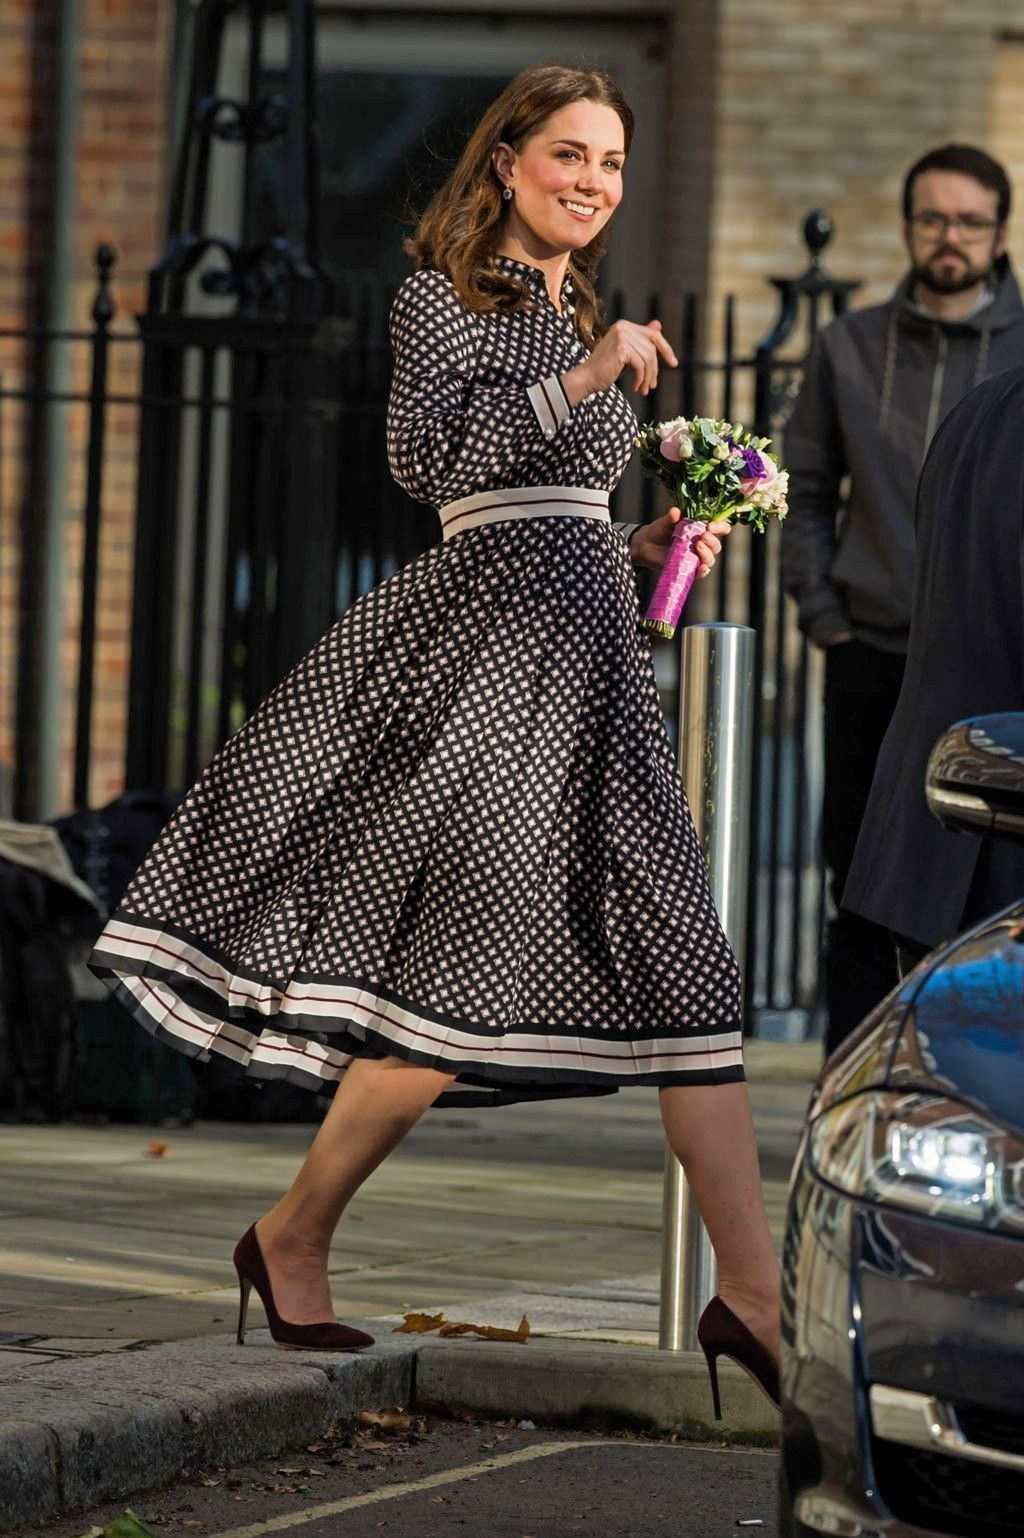 a5a8fc0caa Catherine, Duchess of Cambridge | Polka Dots in 2019 | Kate ...